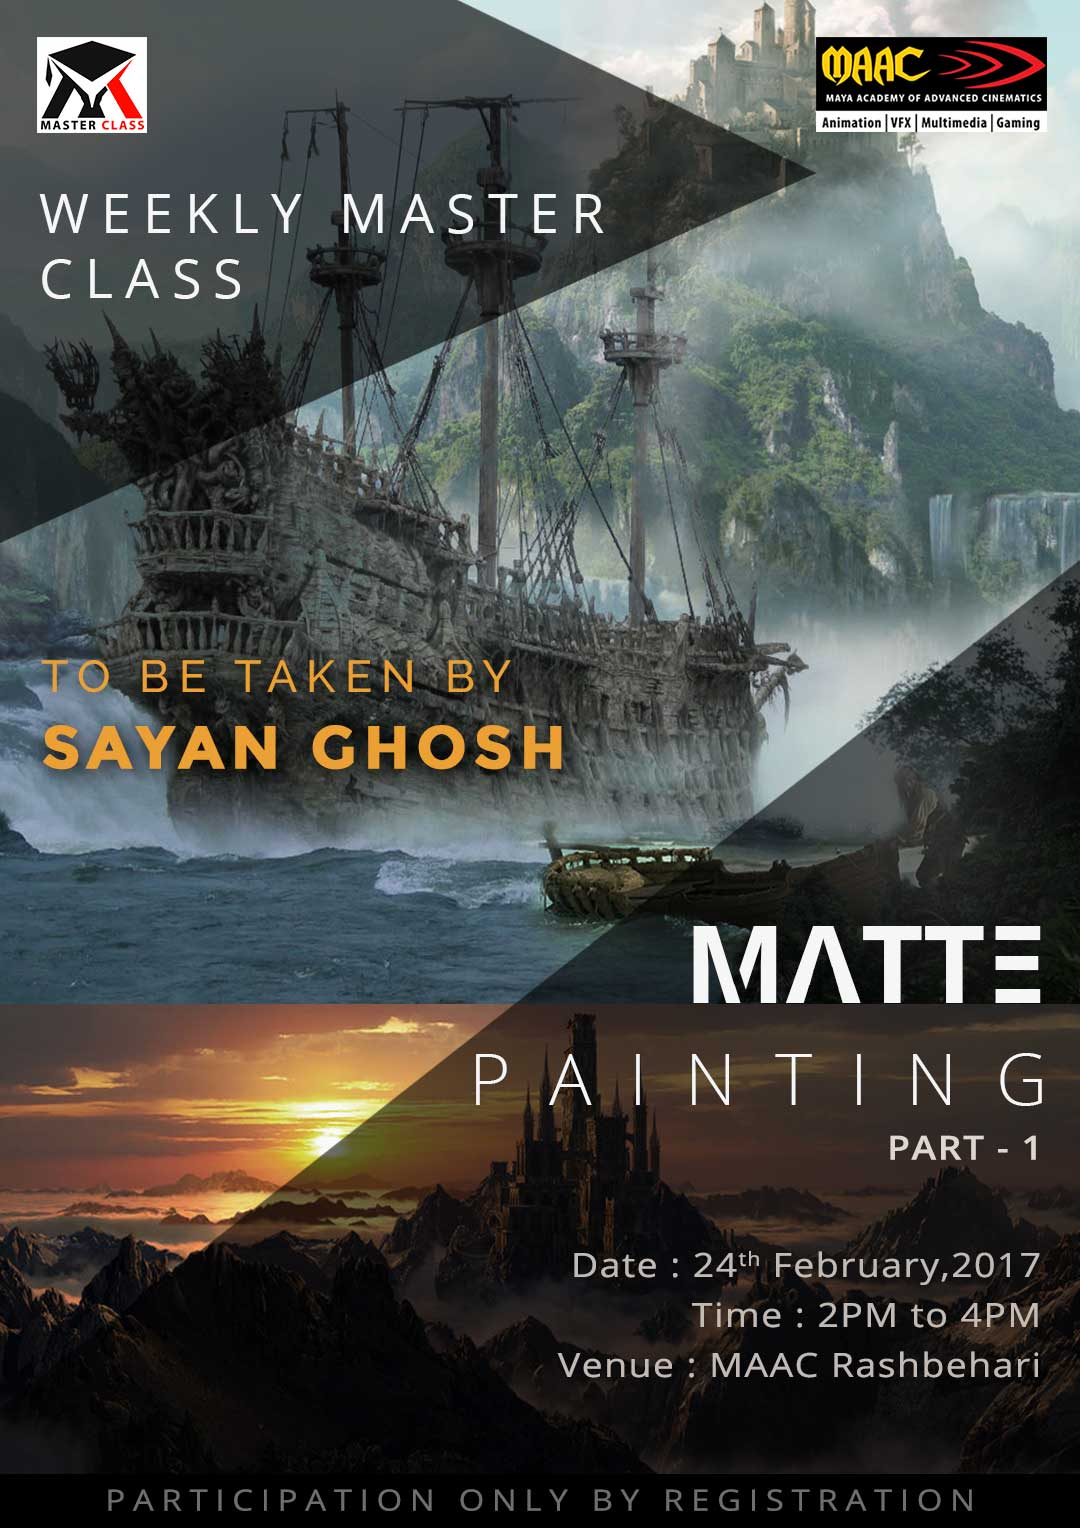 Weekly Master Class on Matte Painting Day-1 - Sayan Ghosh